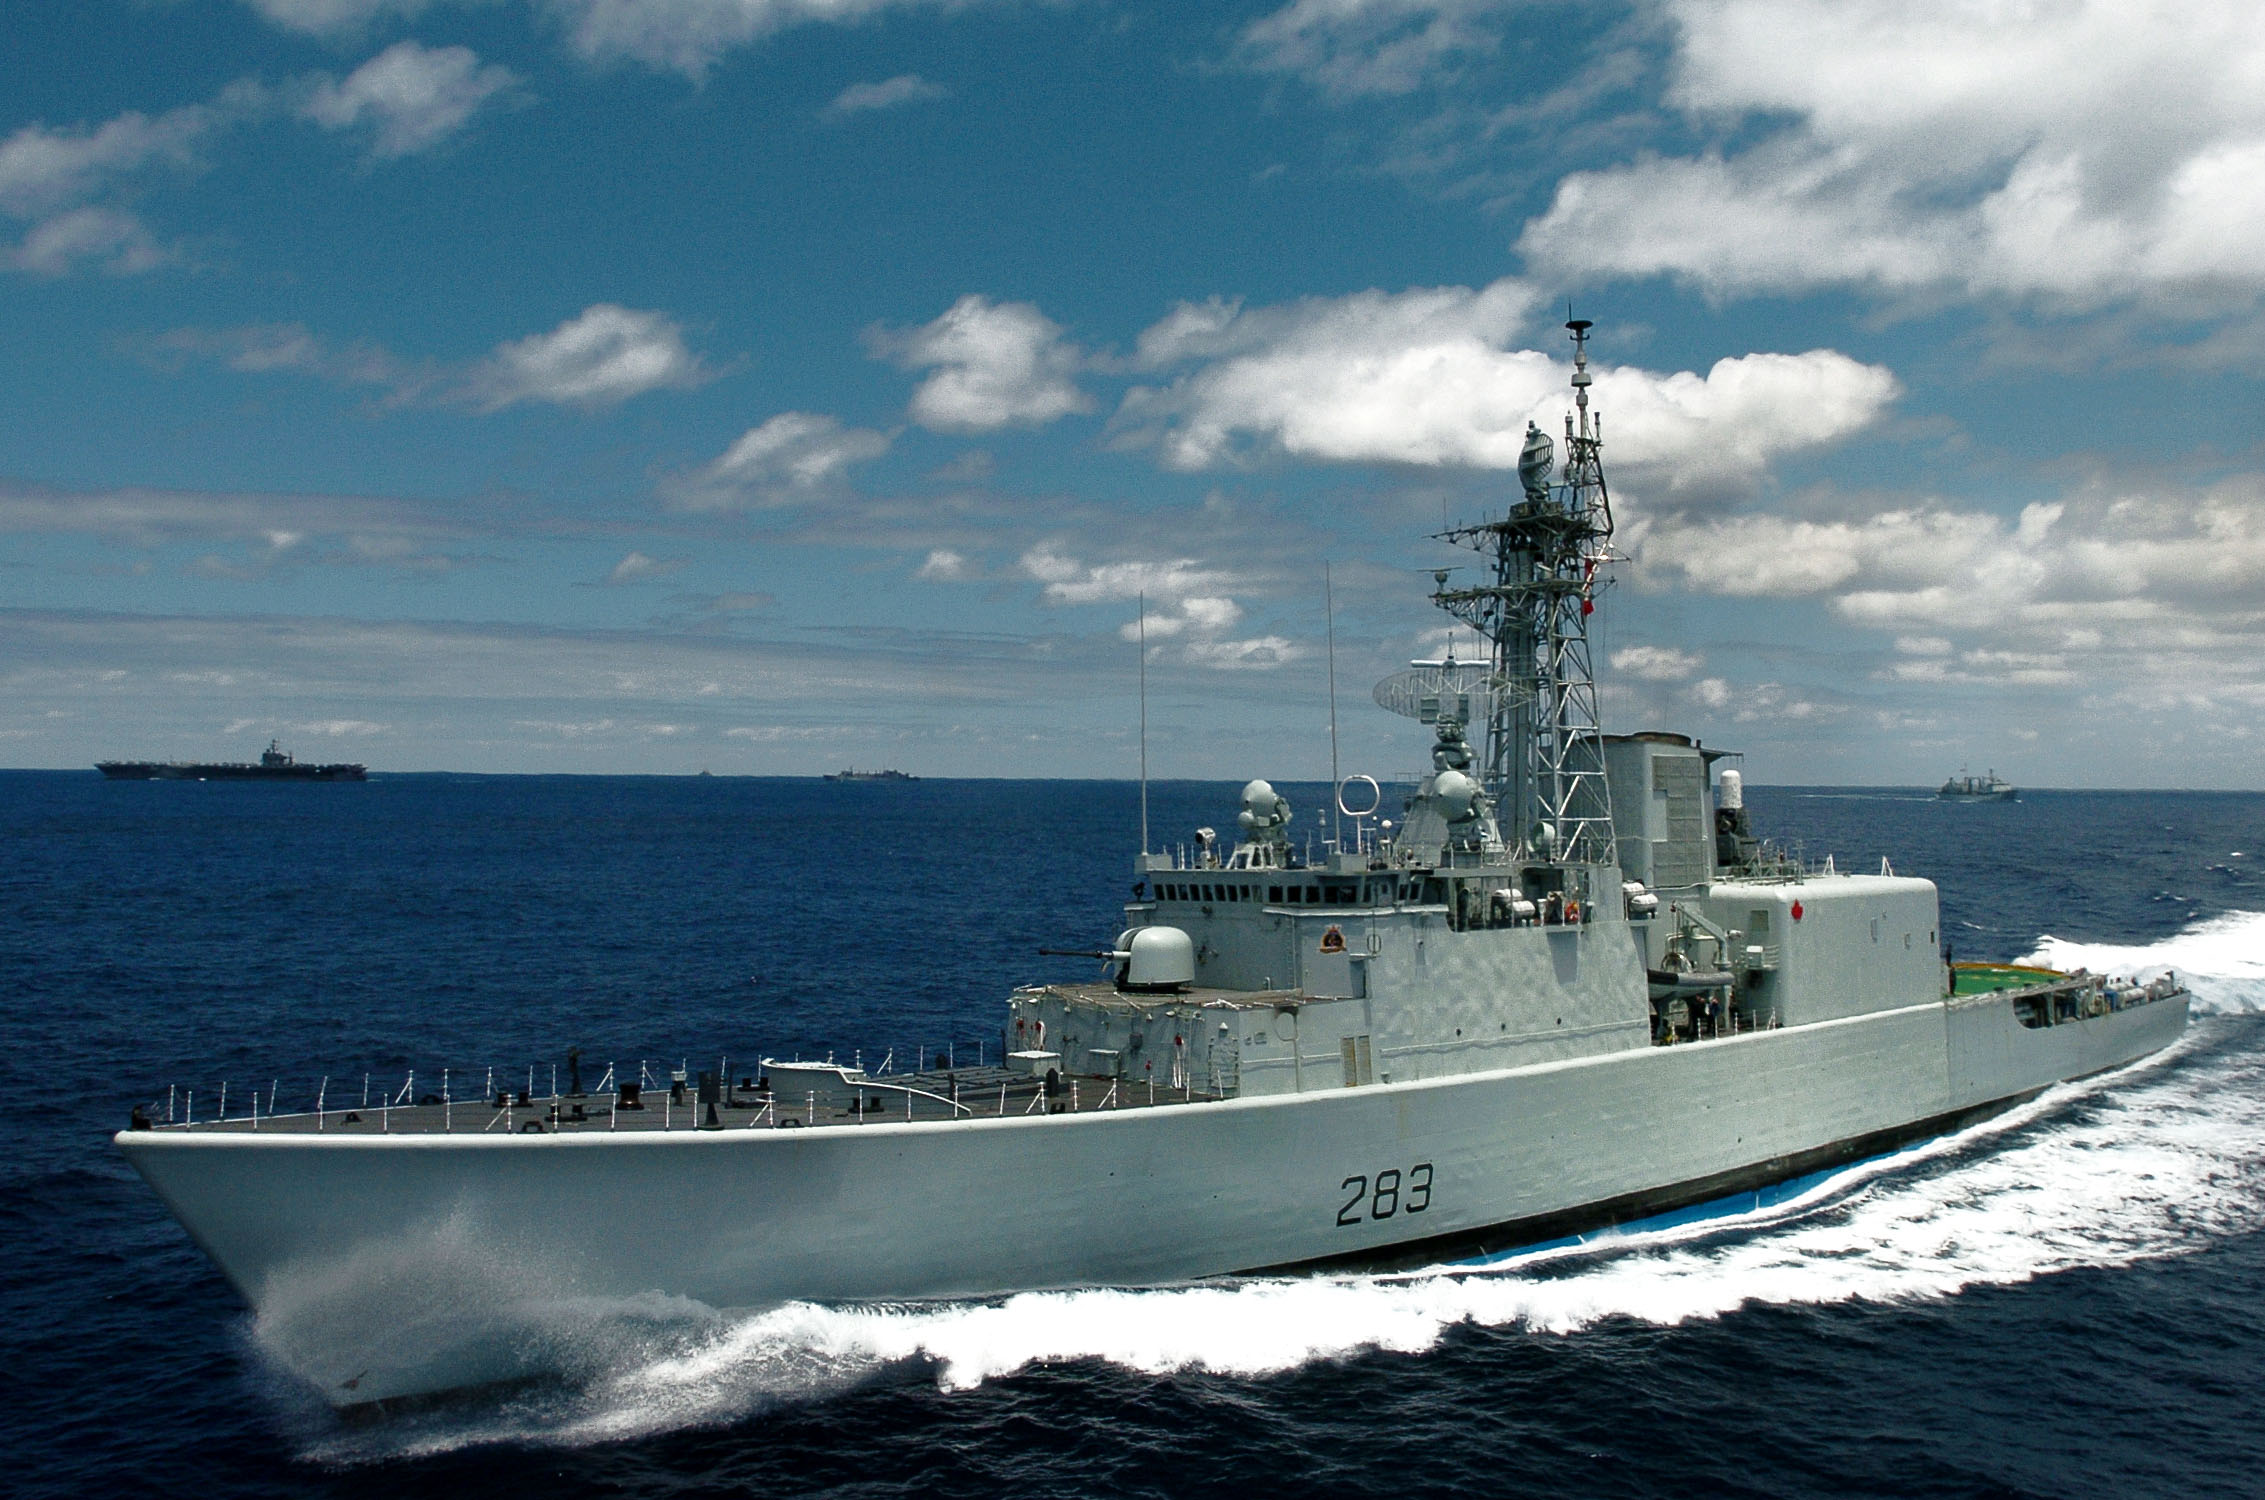 Guided missile destroyer hmcs algonquin a tribal class warship